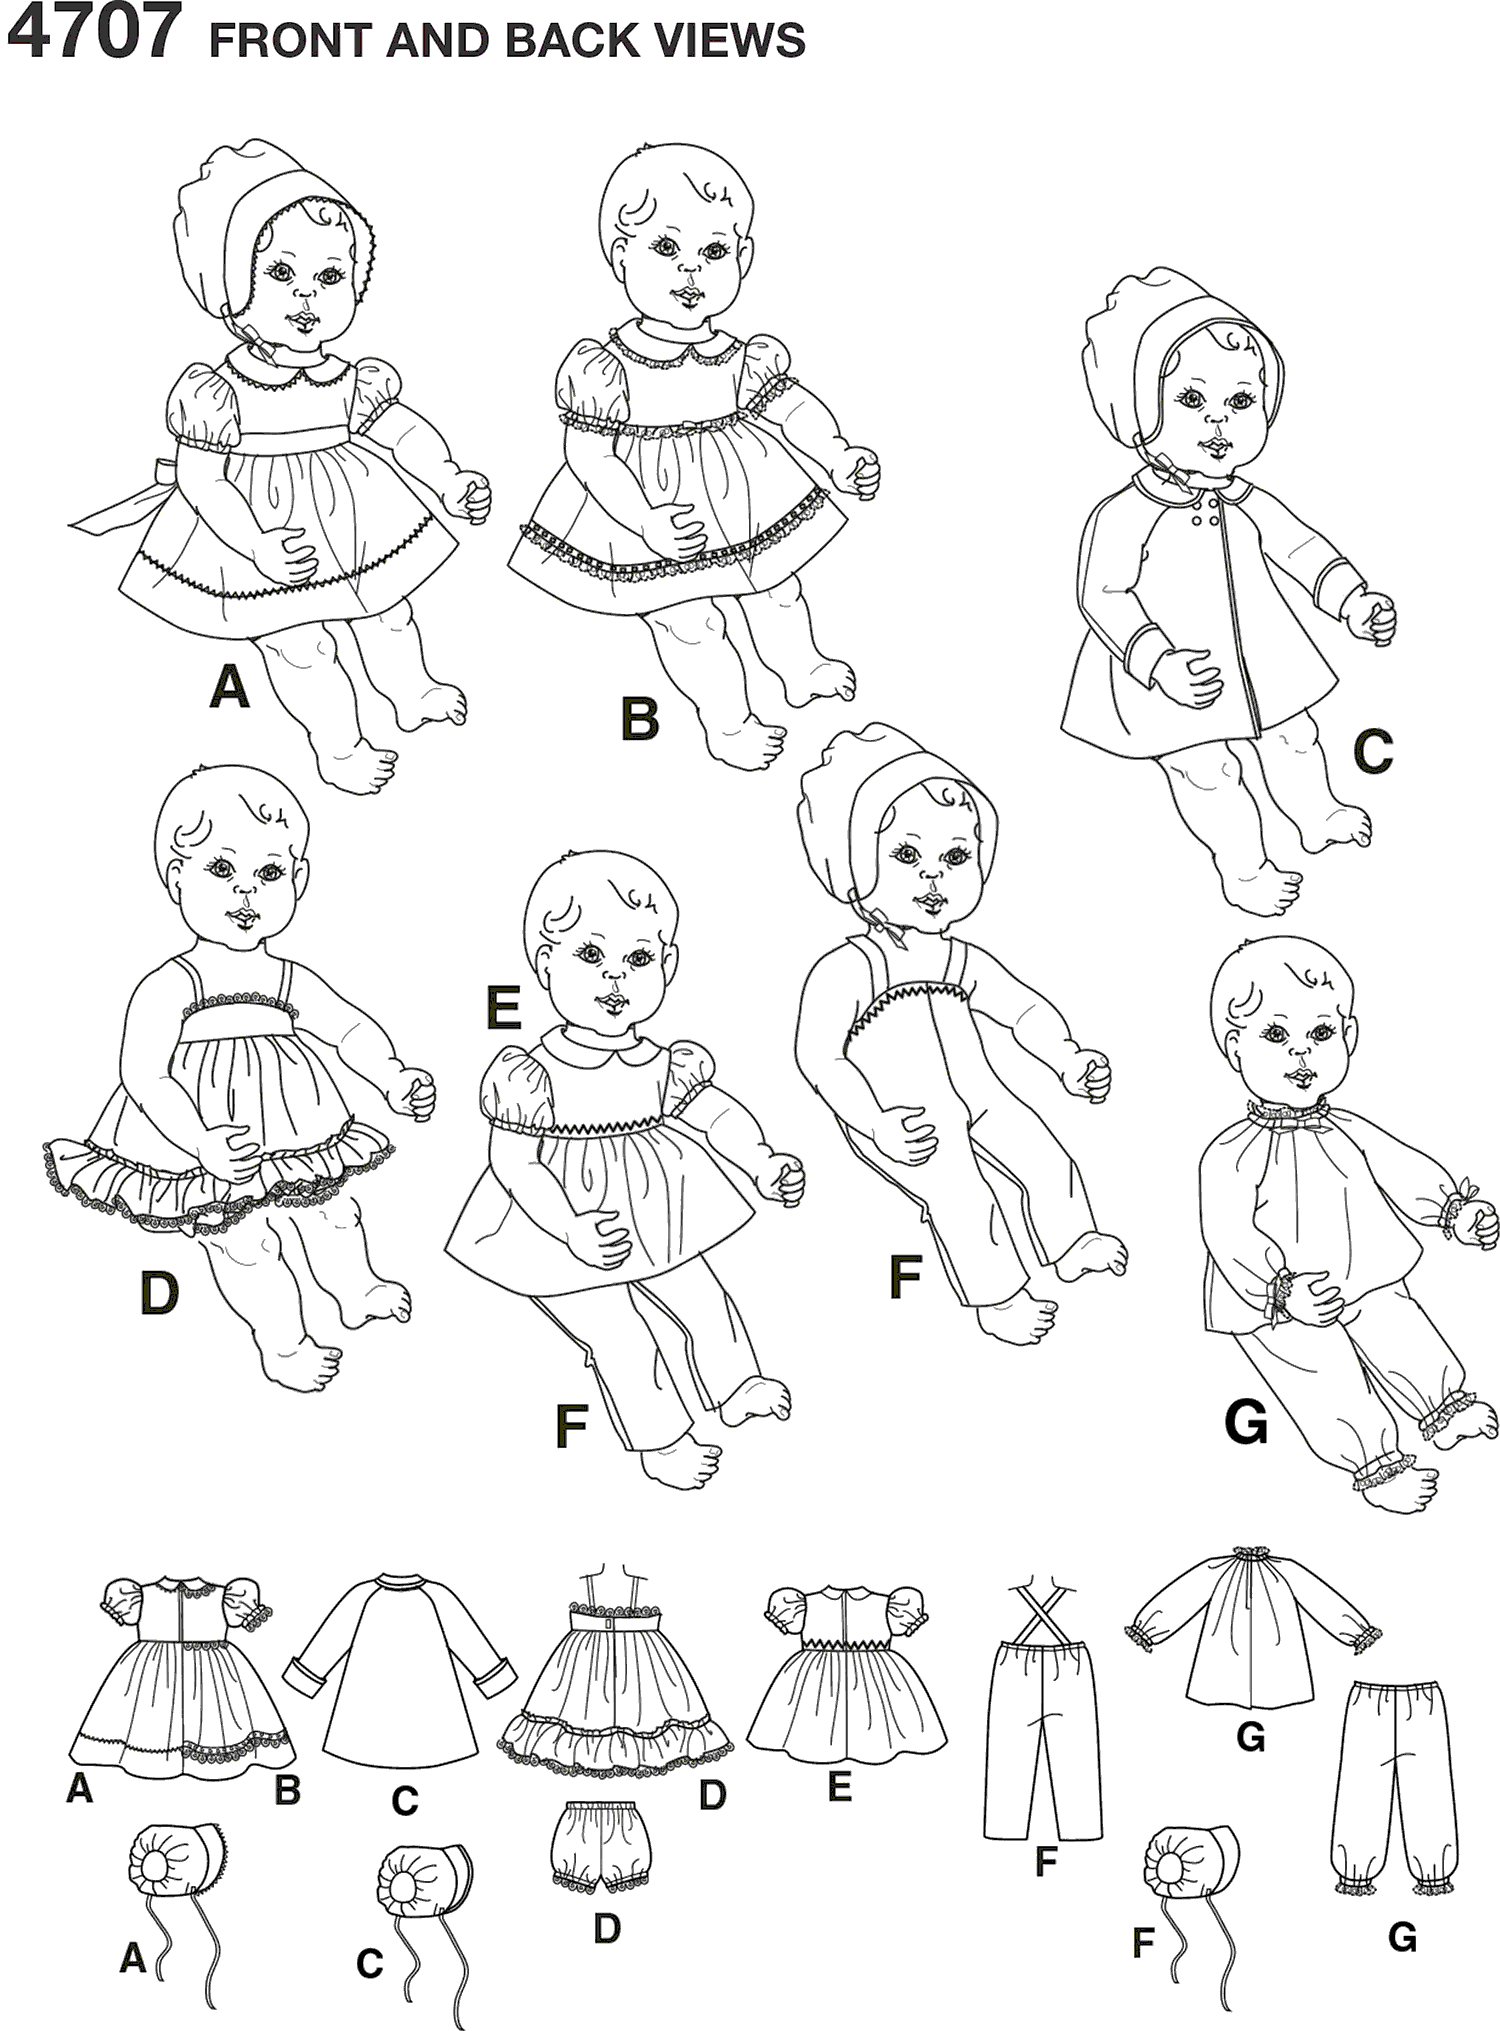 Simplicity Pattern 4707 Doll Clothes Line Art From Patternsandplains.com